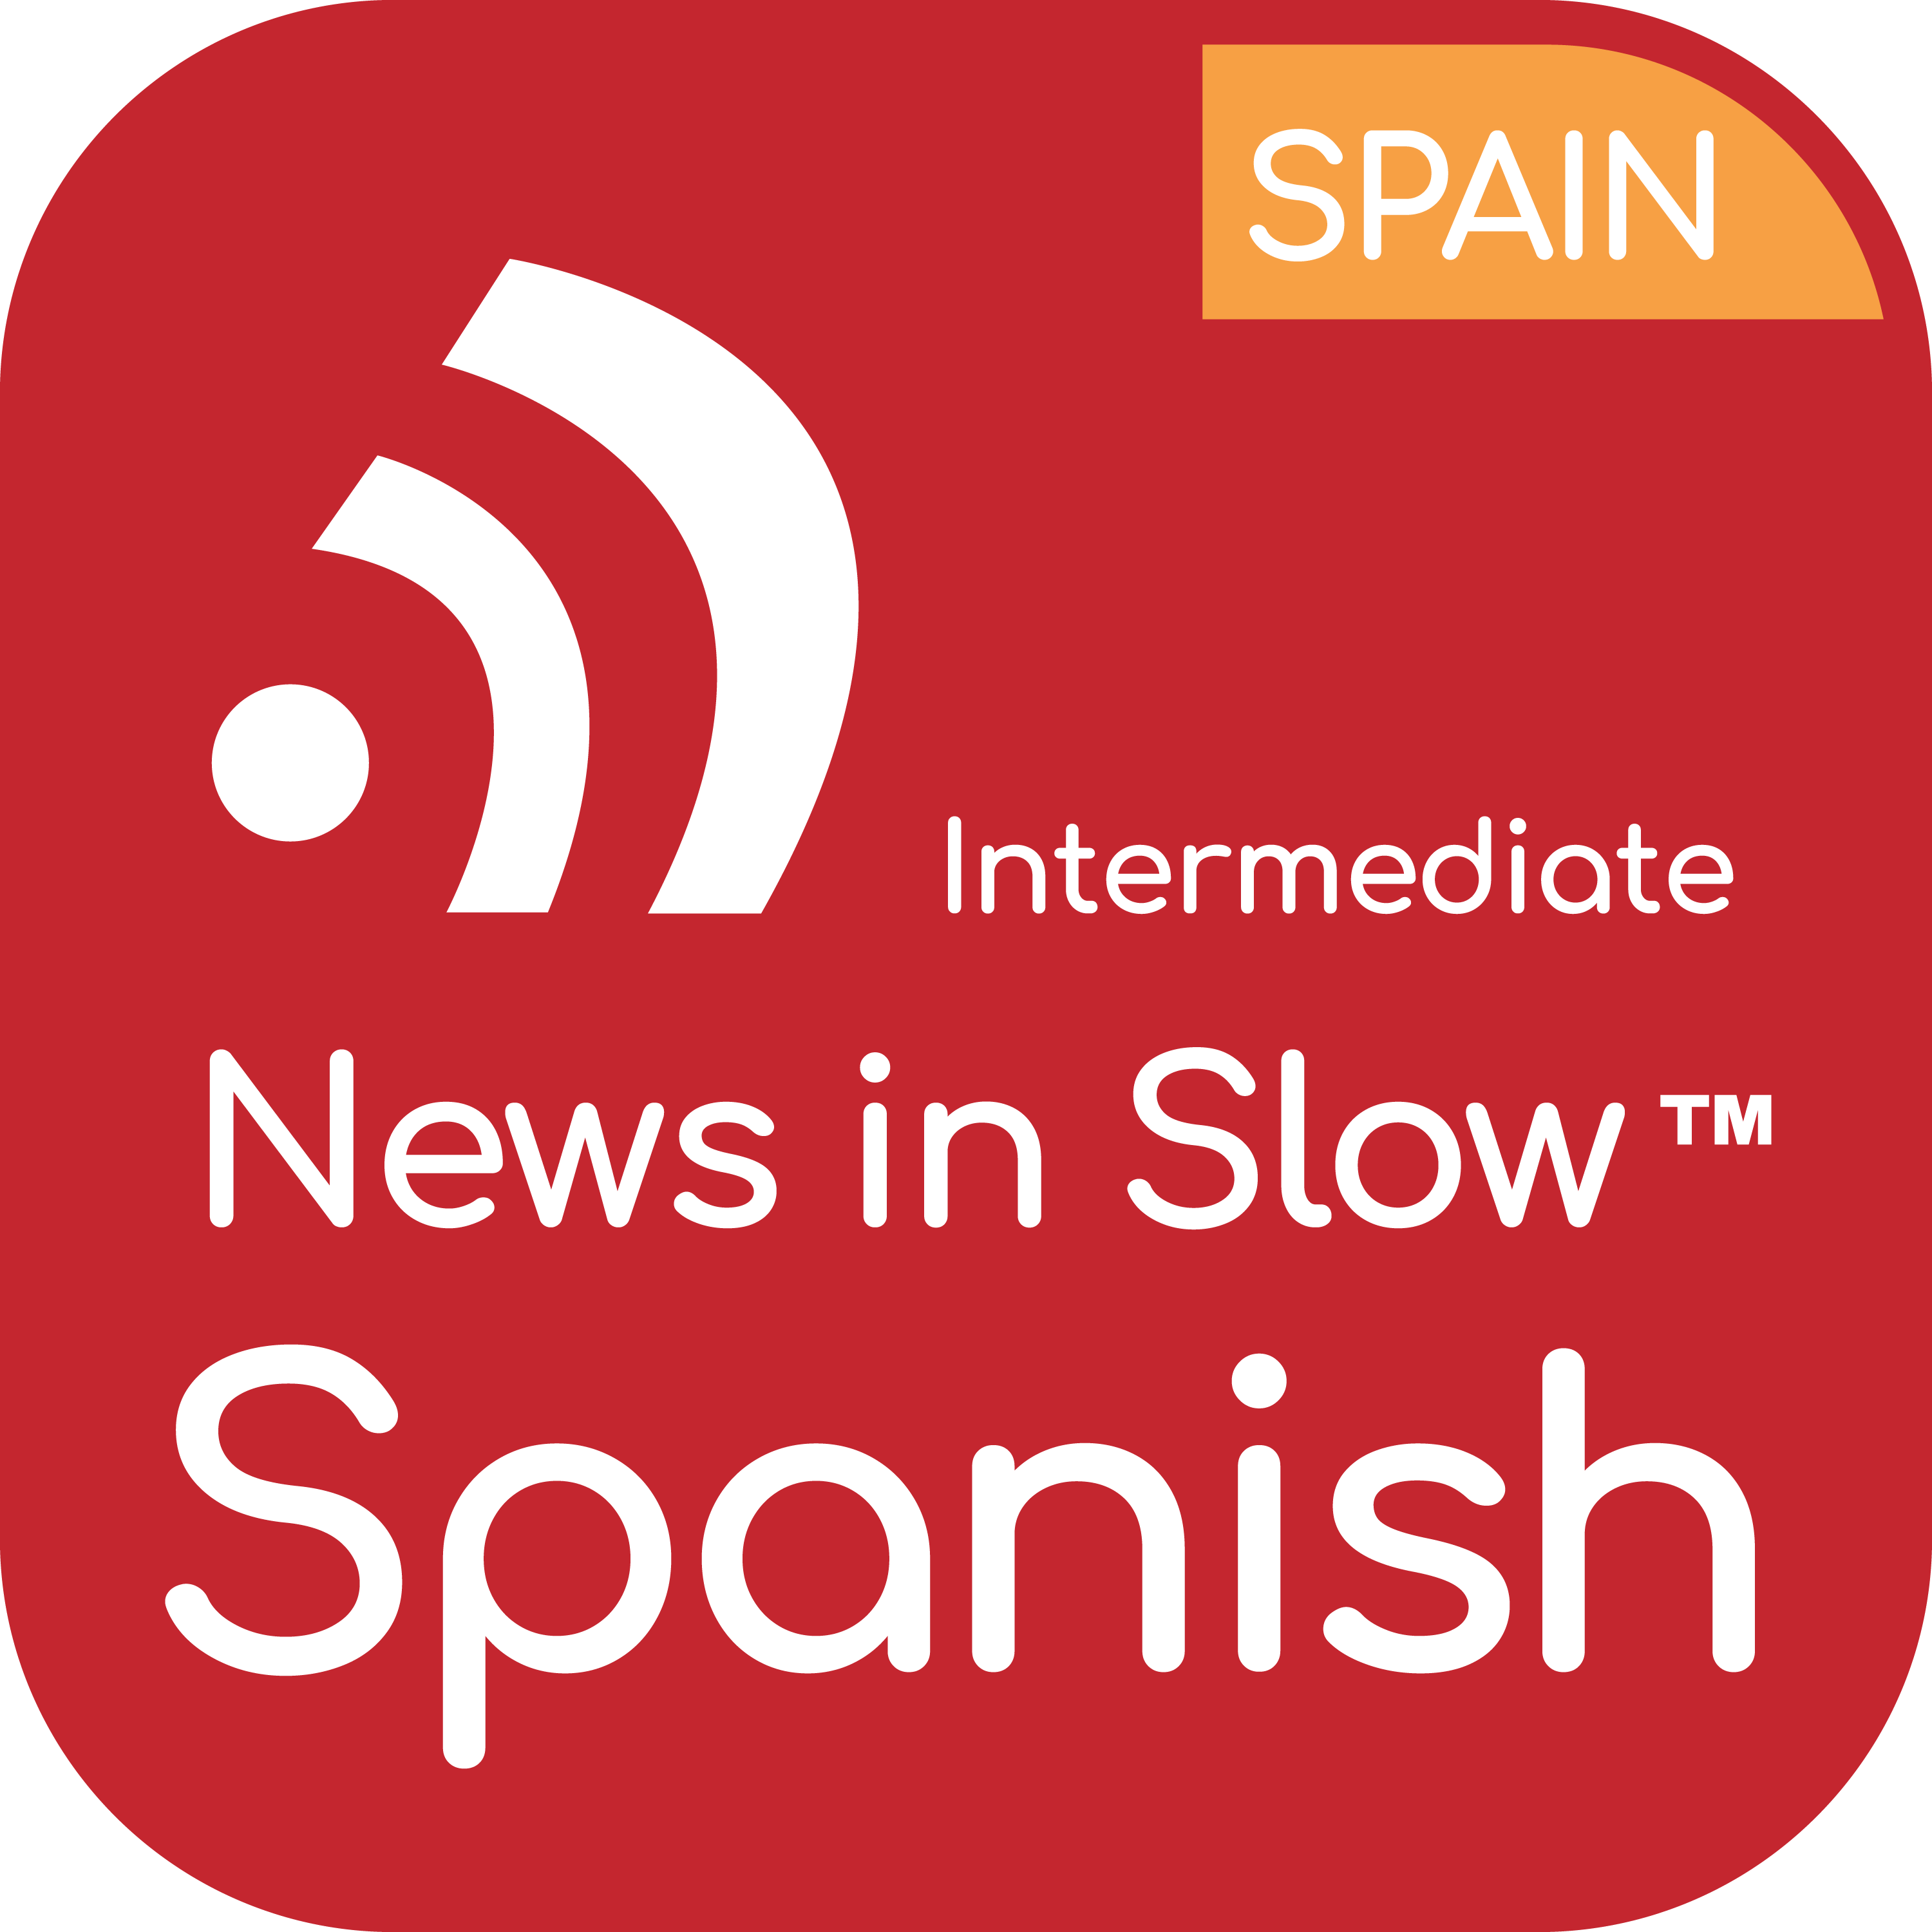 News in Slow Spanish - #613 - Learn Spanish through Current Events